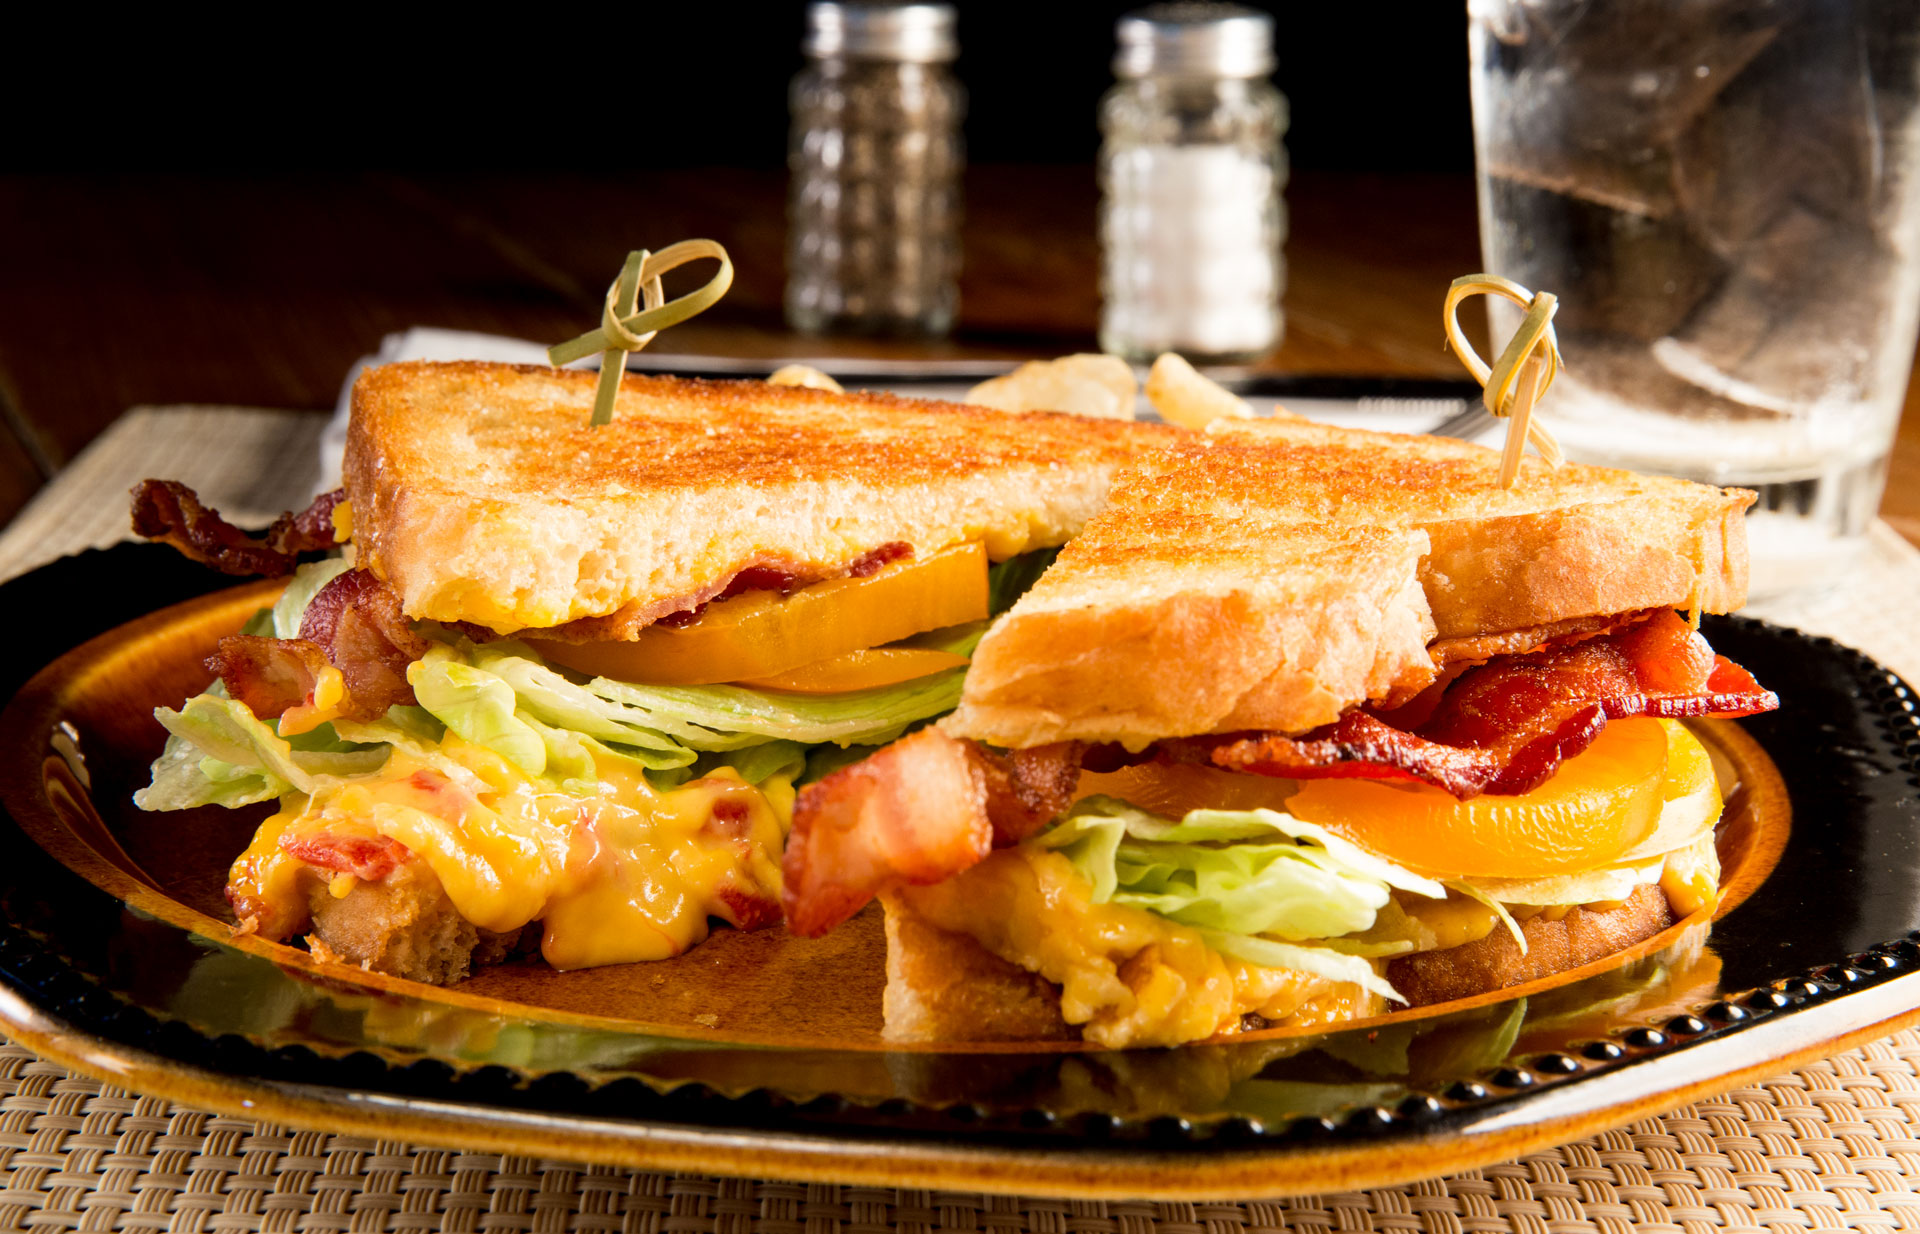 Nothing speaks comfort food like a grilled cheese sandwich with a twist. This version, created by the chefs of The Food Channel featured pimento, Tobasco and sharp cheddar cheese.